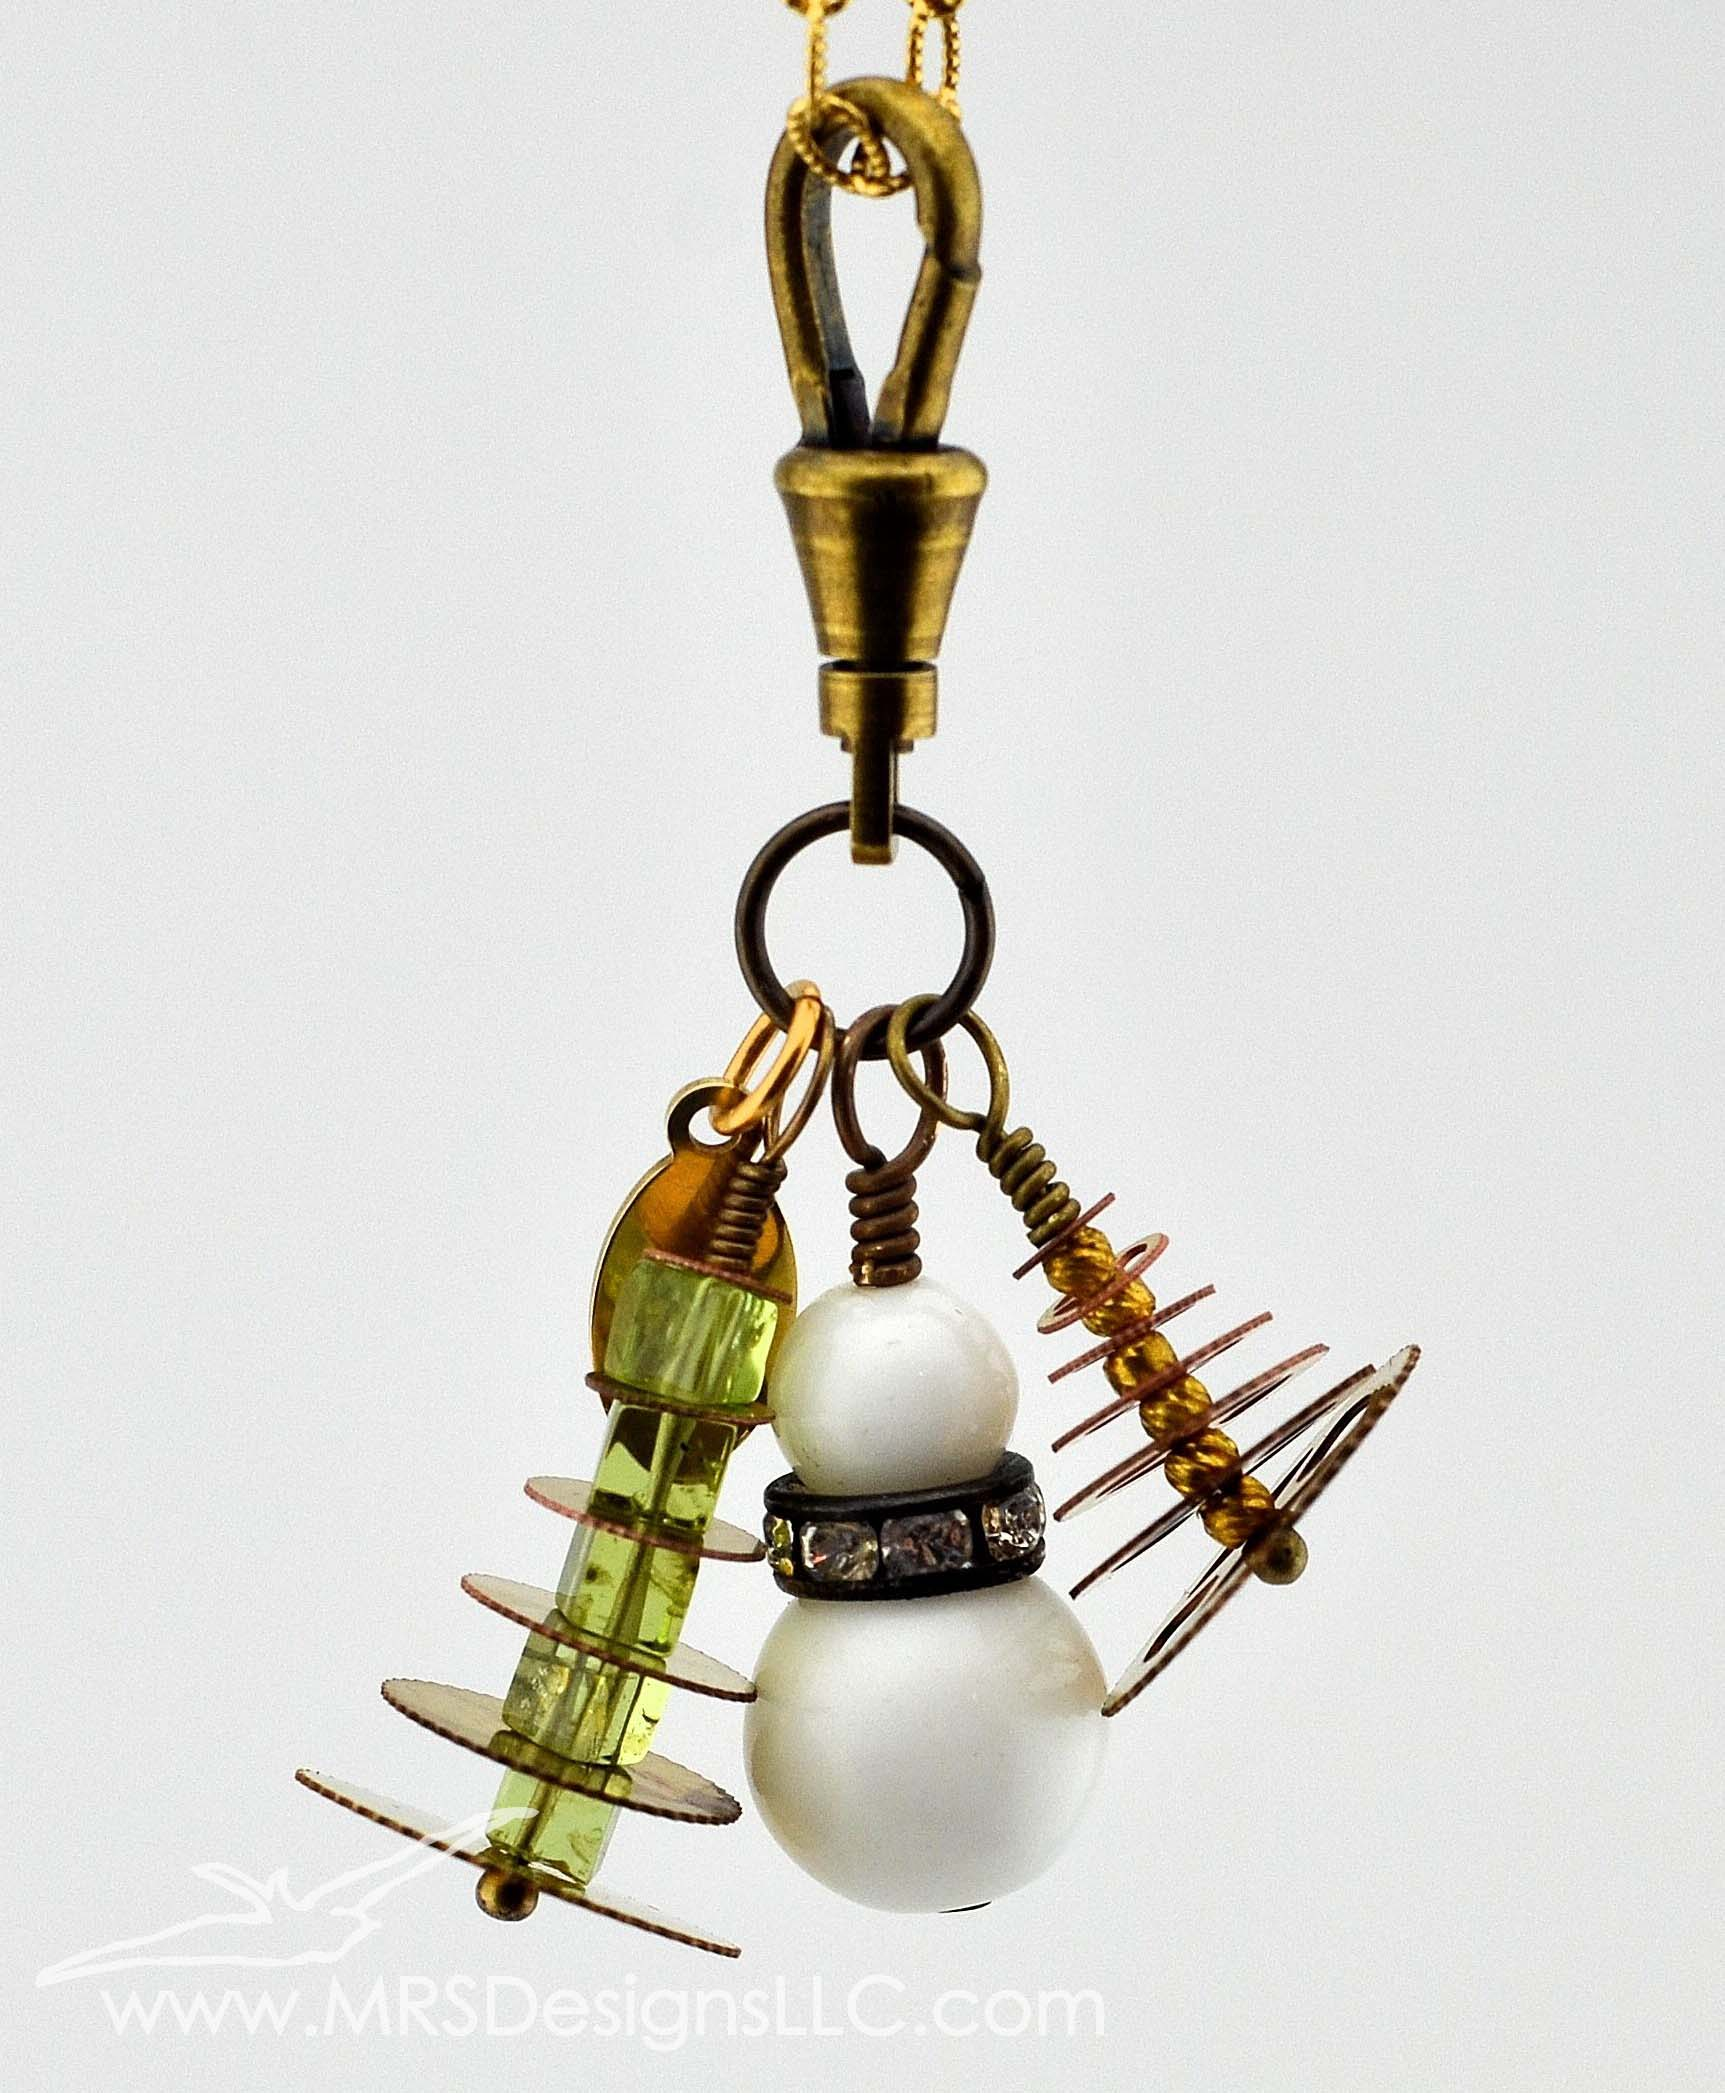 MRS Designs Blog - Charm pendants made with vintage clock gears